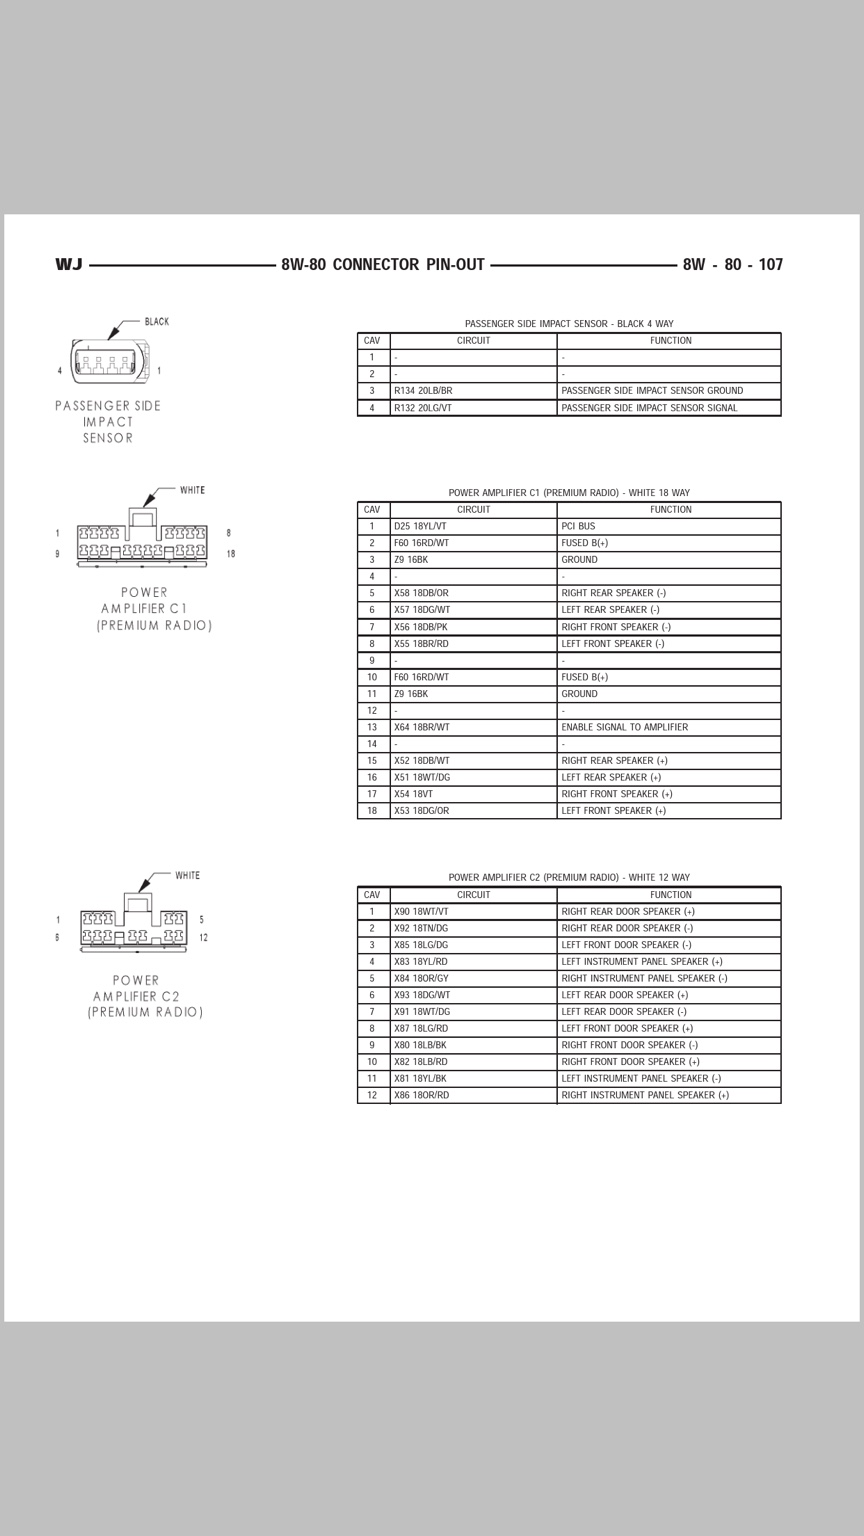 0f3f02a998acb4bf6d99c13c00b1e020 diagrams 1169862 infinity 36670 wiring diagram56043029ac 36670 infinity amp wiring diagram at readyjetset.co